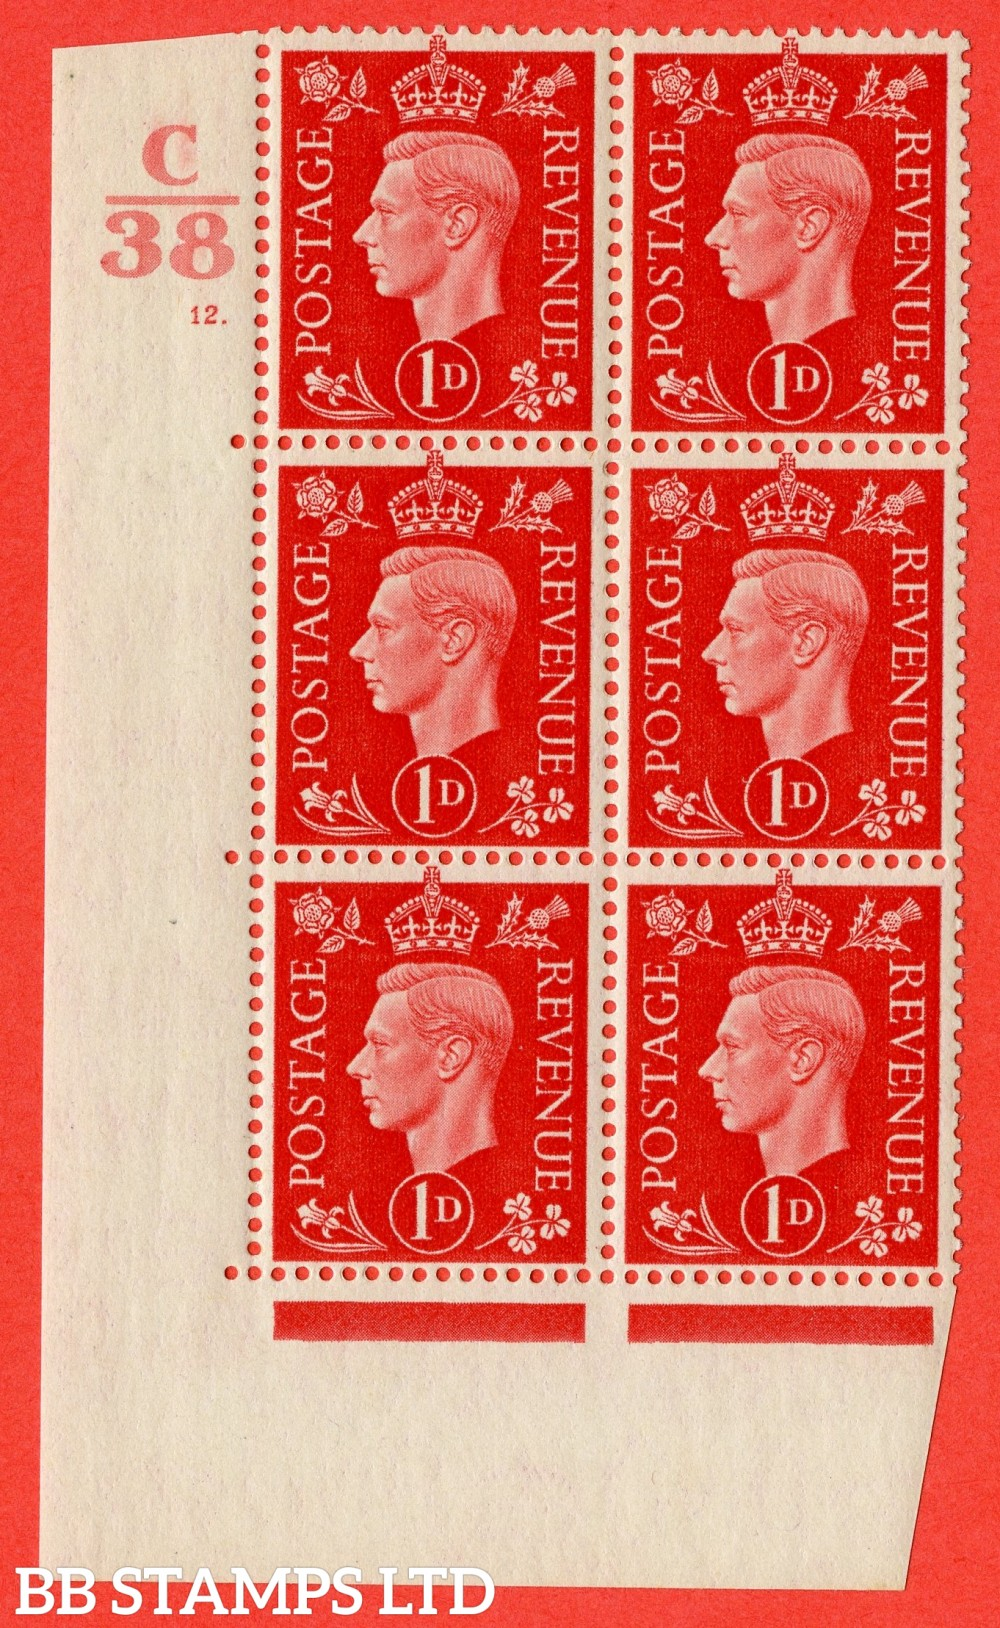 """SG. 463. Q4. 1d Scarlet. A superb UNMOUNTED MINT """" Control C38 cylinder 12 dot """" block of 6 with perf type 5 E/I with marginal rule."""